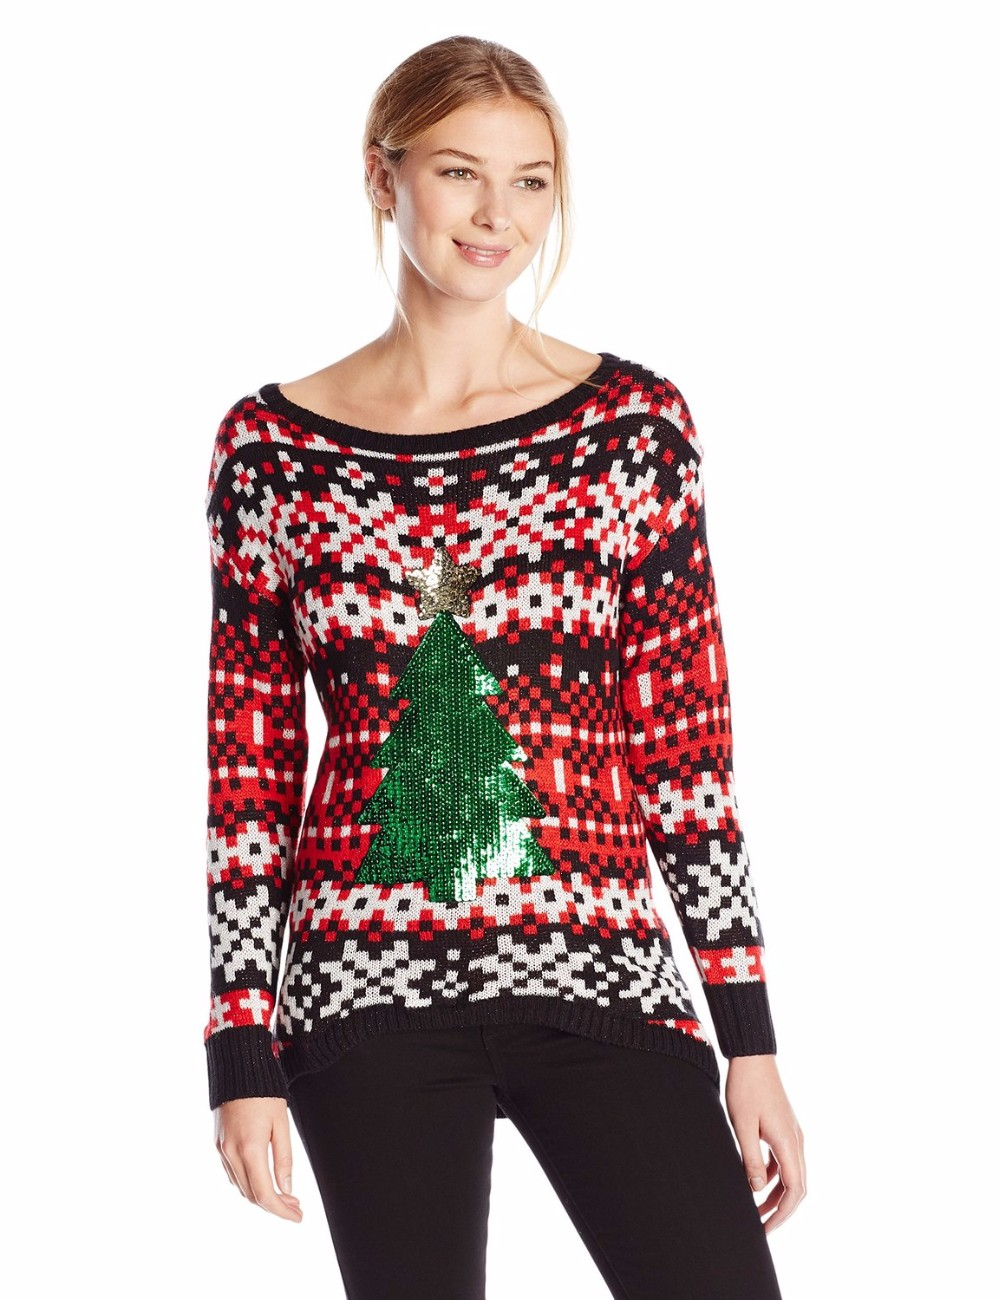 List manufacturers of jumper knitting patterns buy jumper women red white sweater pixelated pattern christmas jumper knitting patterns for adults bankloansurffo Image collections